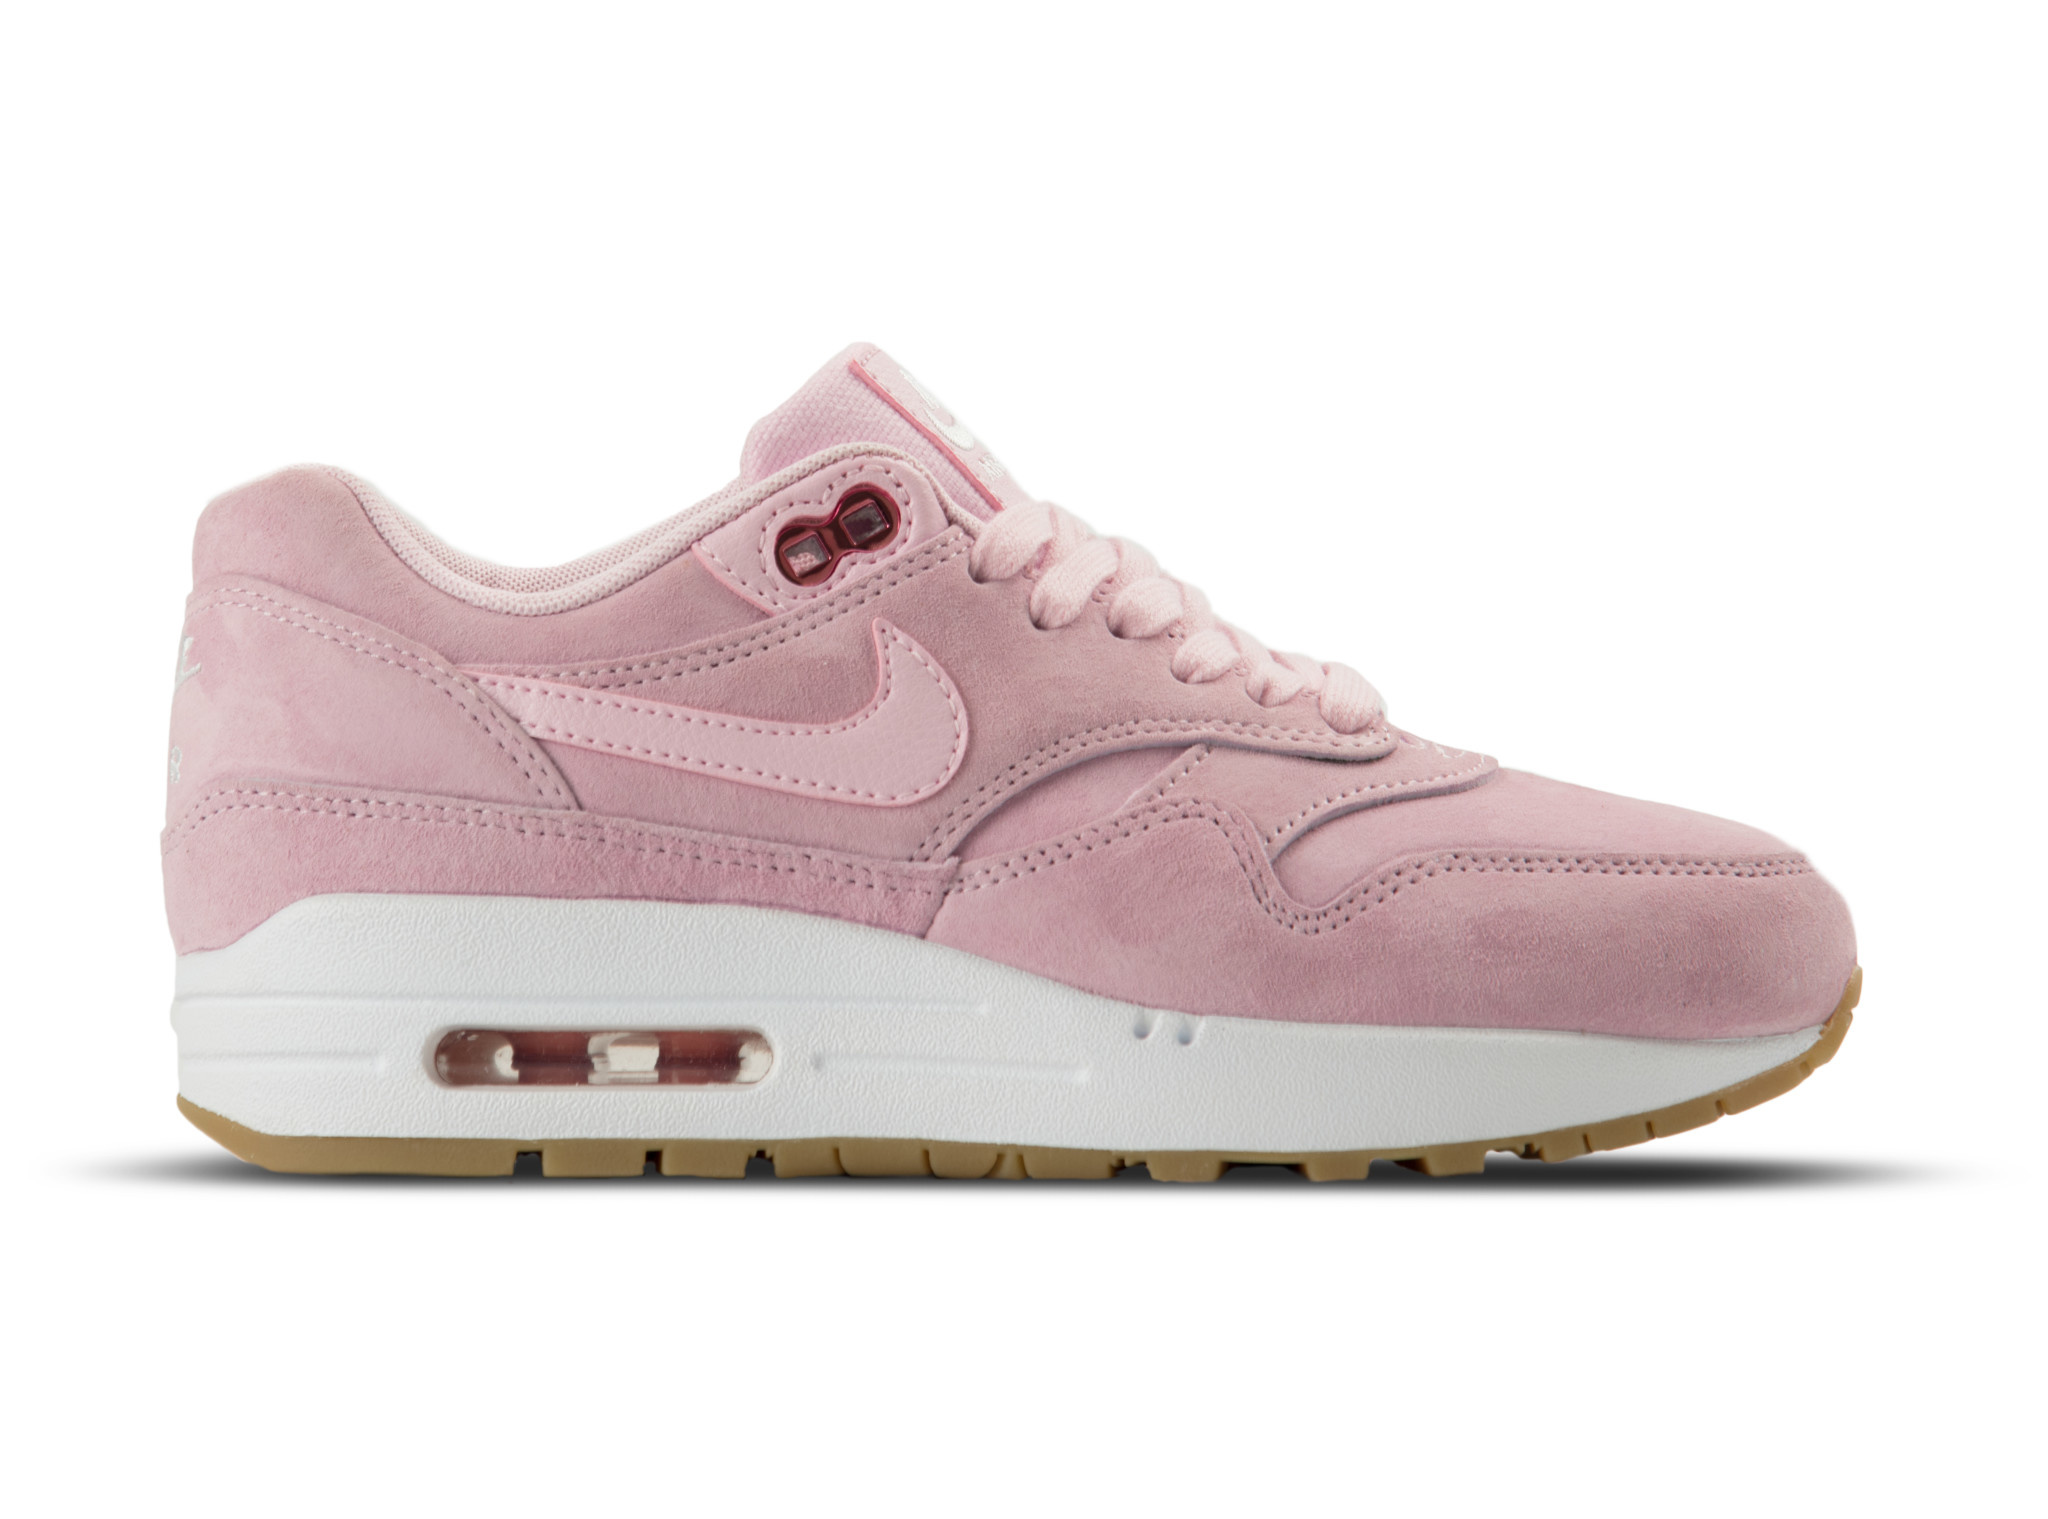 nike air max 1 sd prism pink nz|Free delivery!